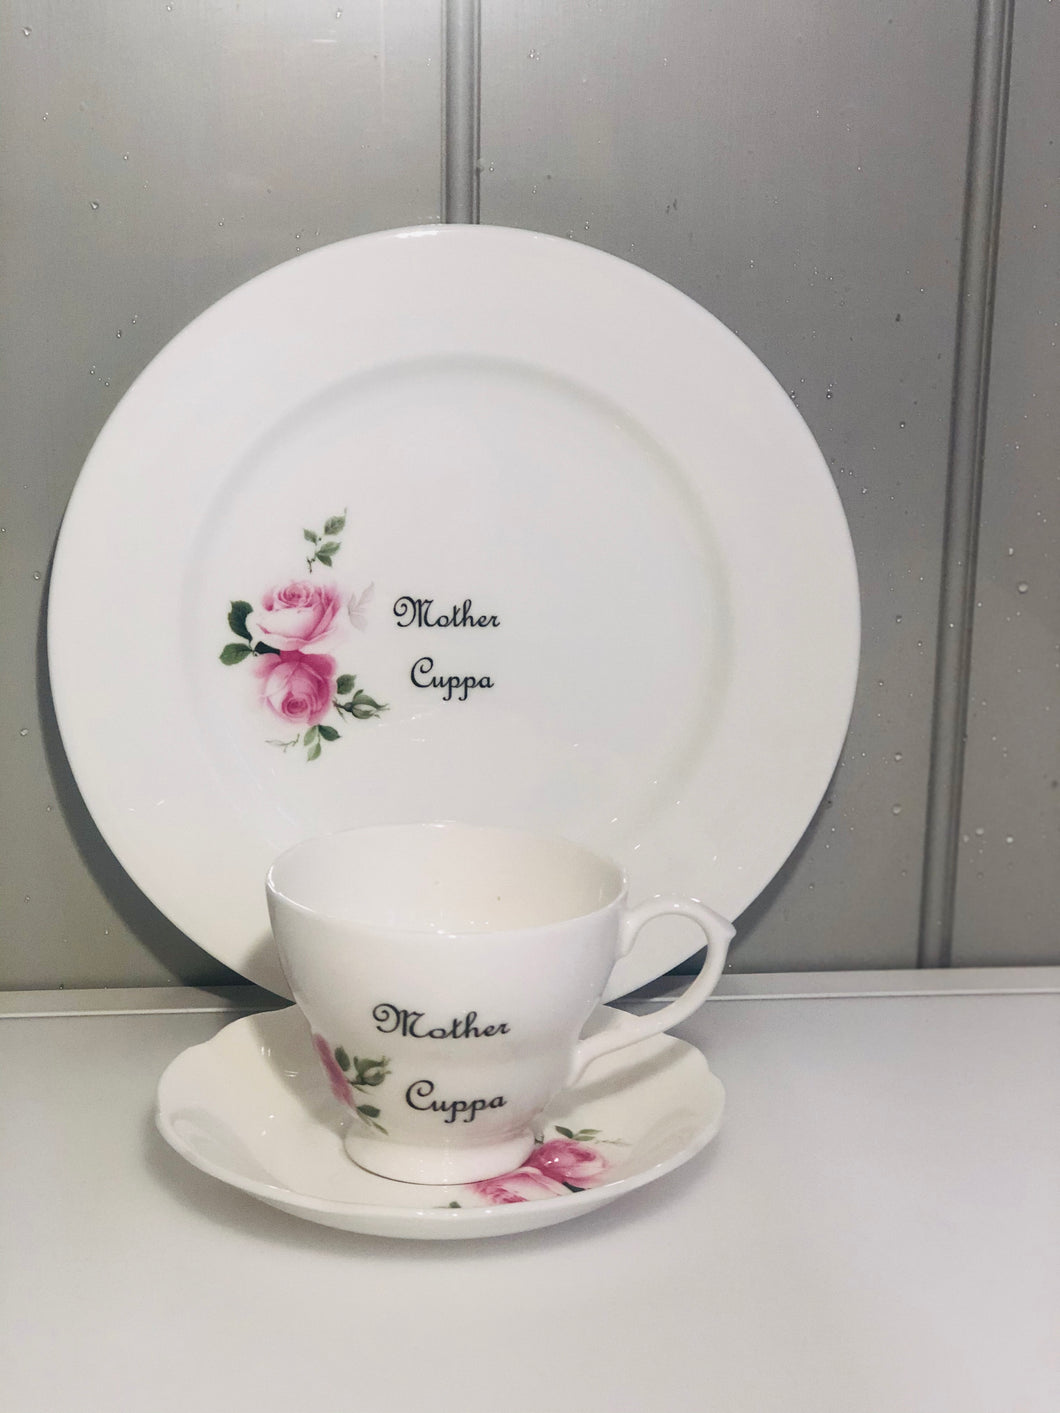 Mother Cuppa tea cup & saucer and side plate in fine bone china